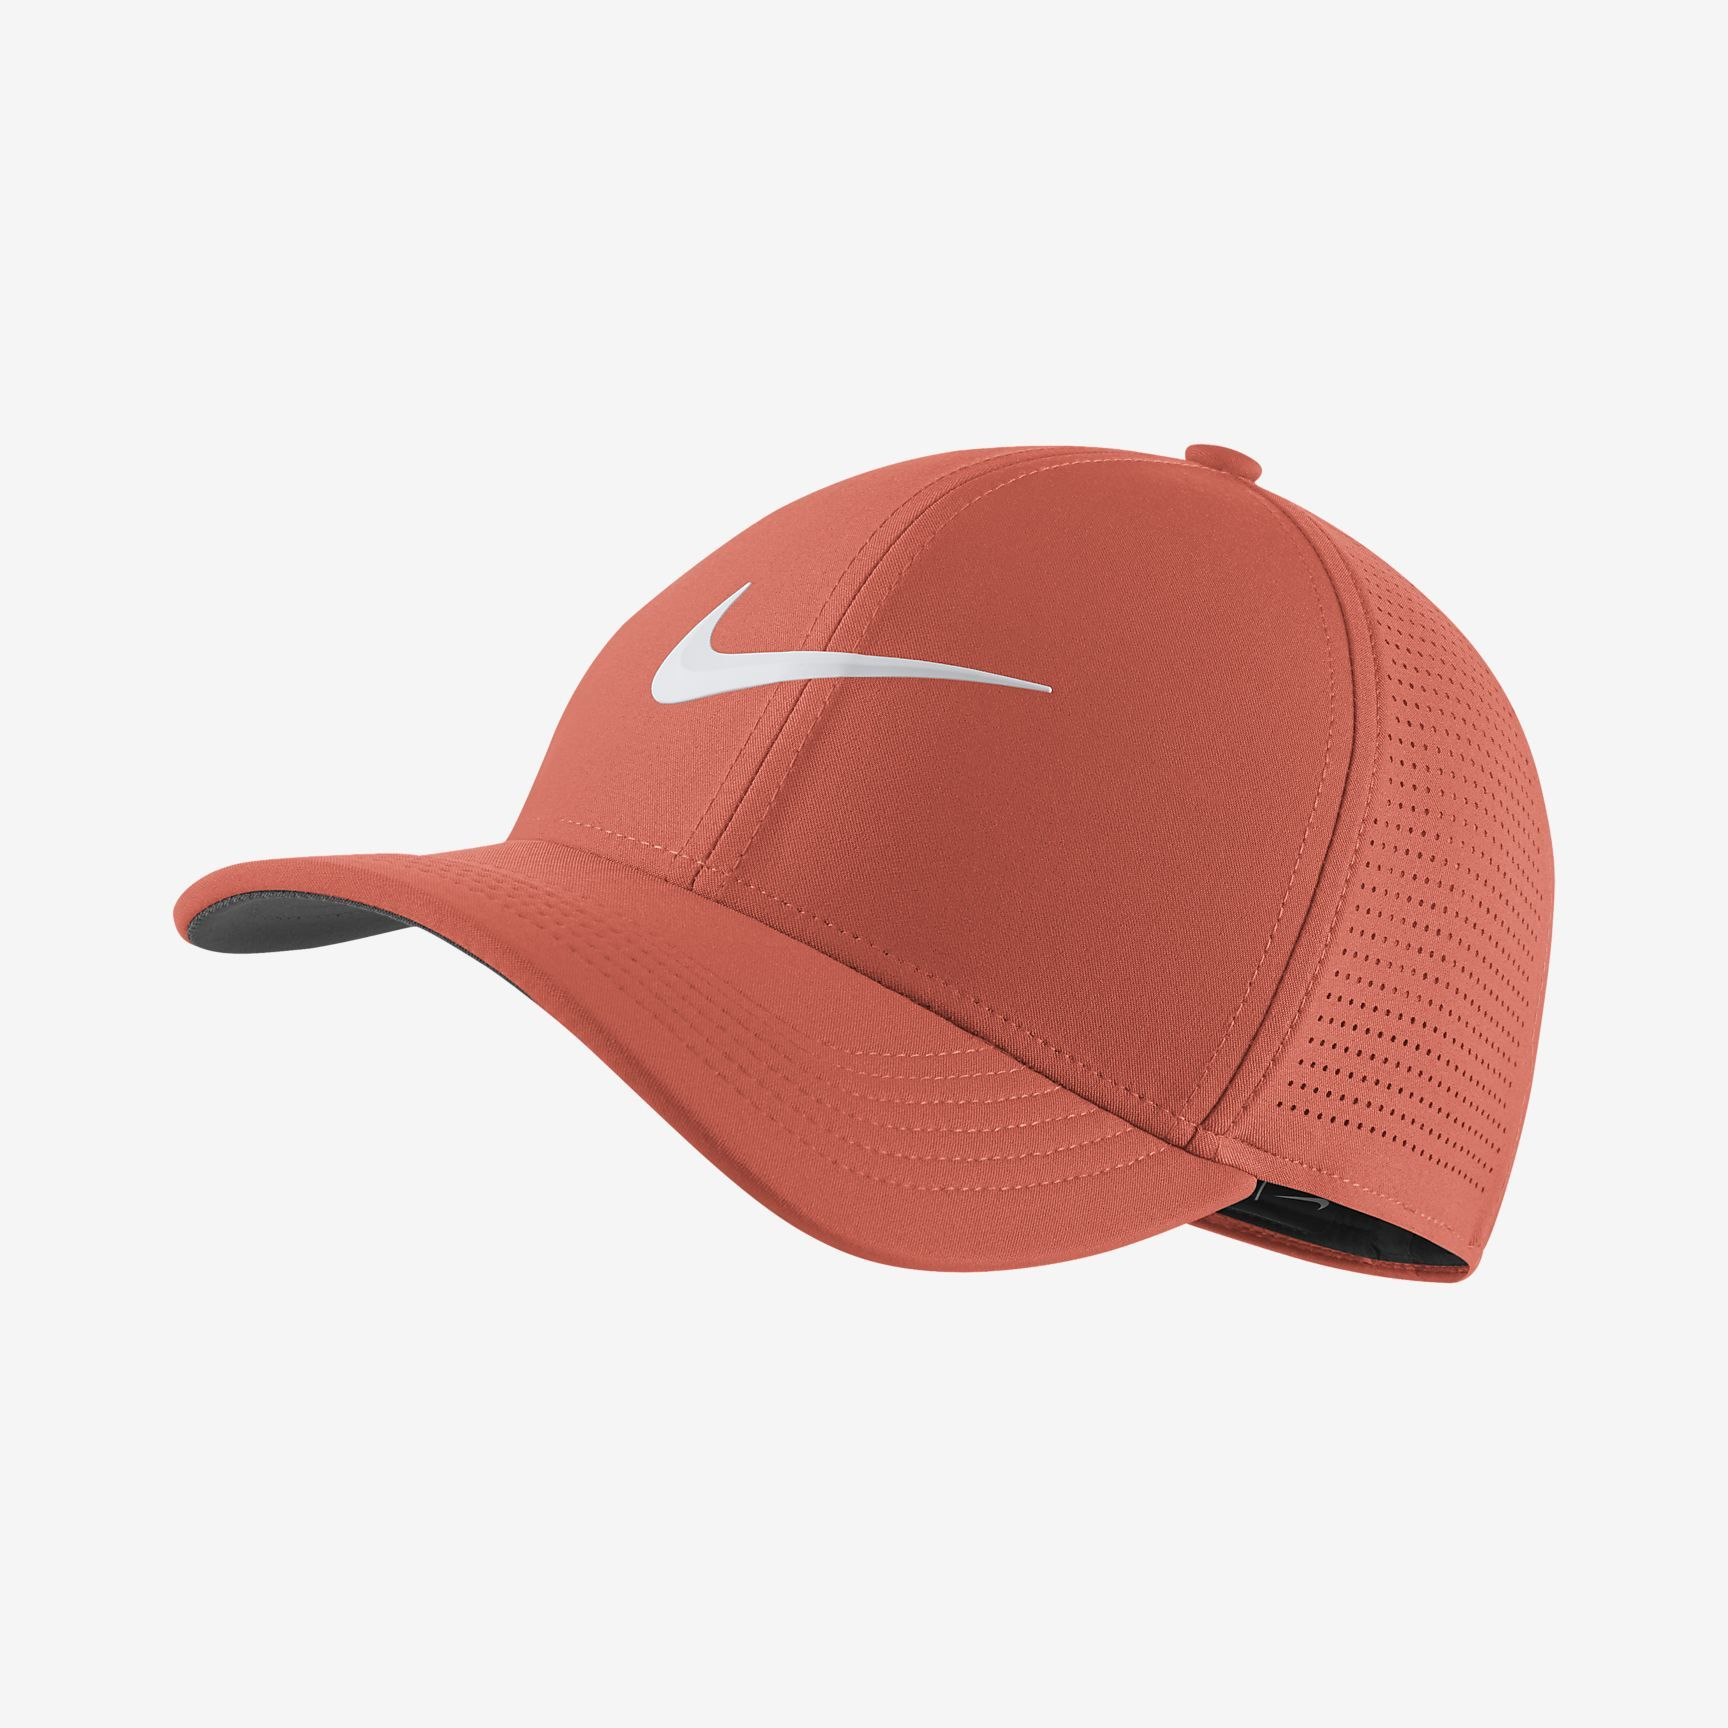 Nike AeroBill Classic 99 Fitted Golf Hat  2d0be0b3756